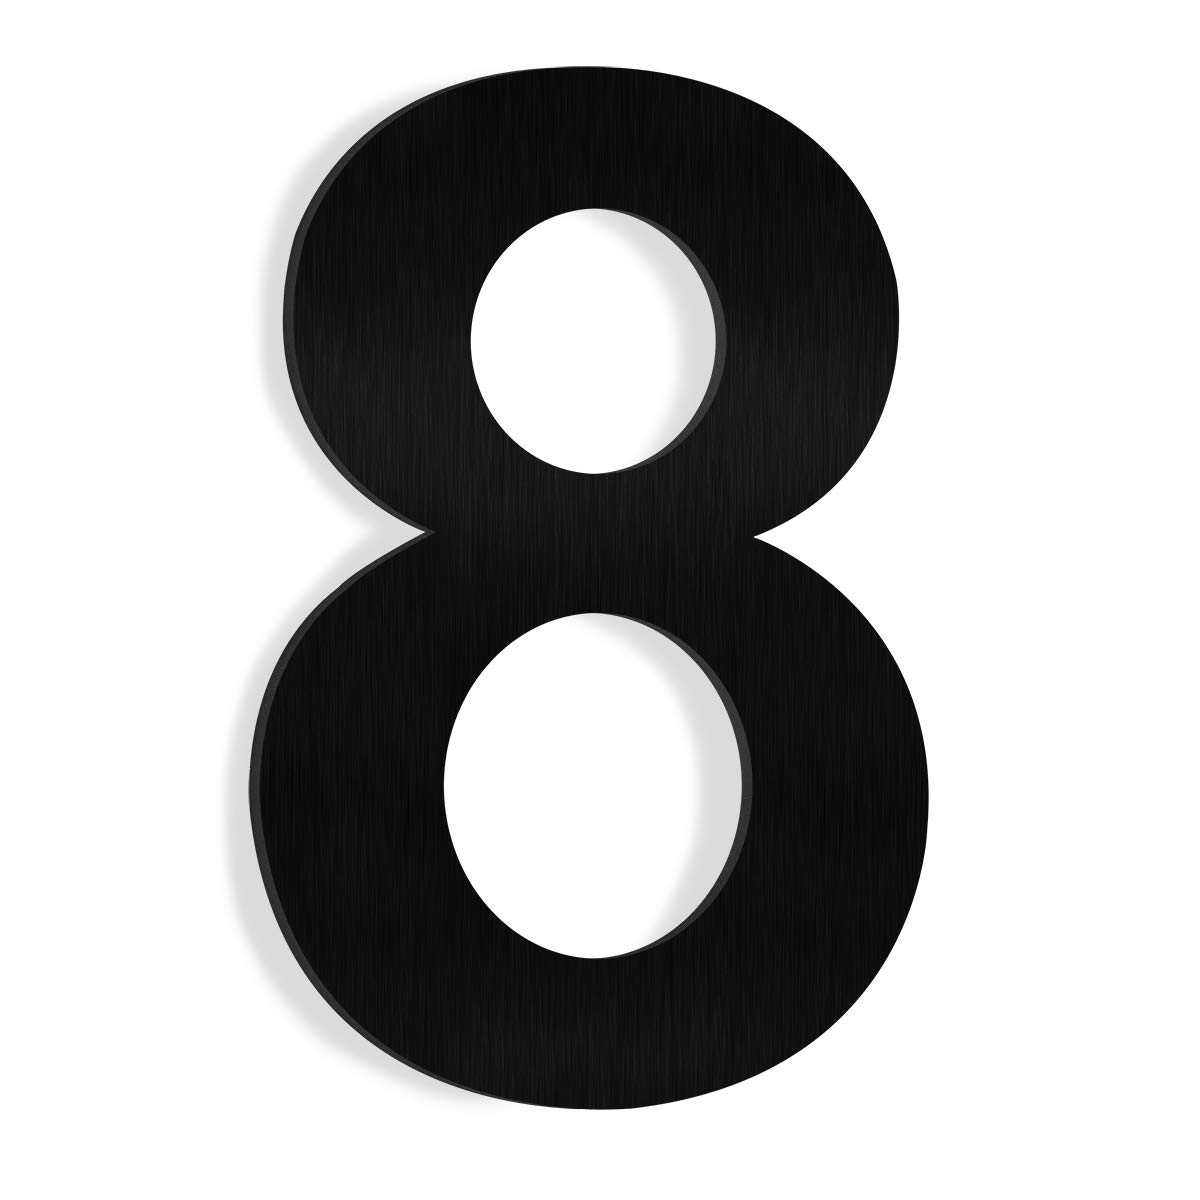 Barton 6' House Letter Number Black Solid Stainless Steel Satin Finishing Floating House Home Number (Number 1)